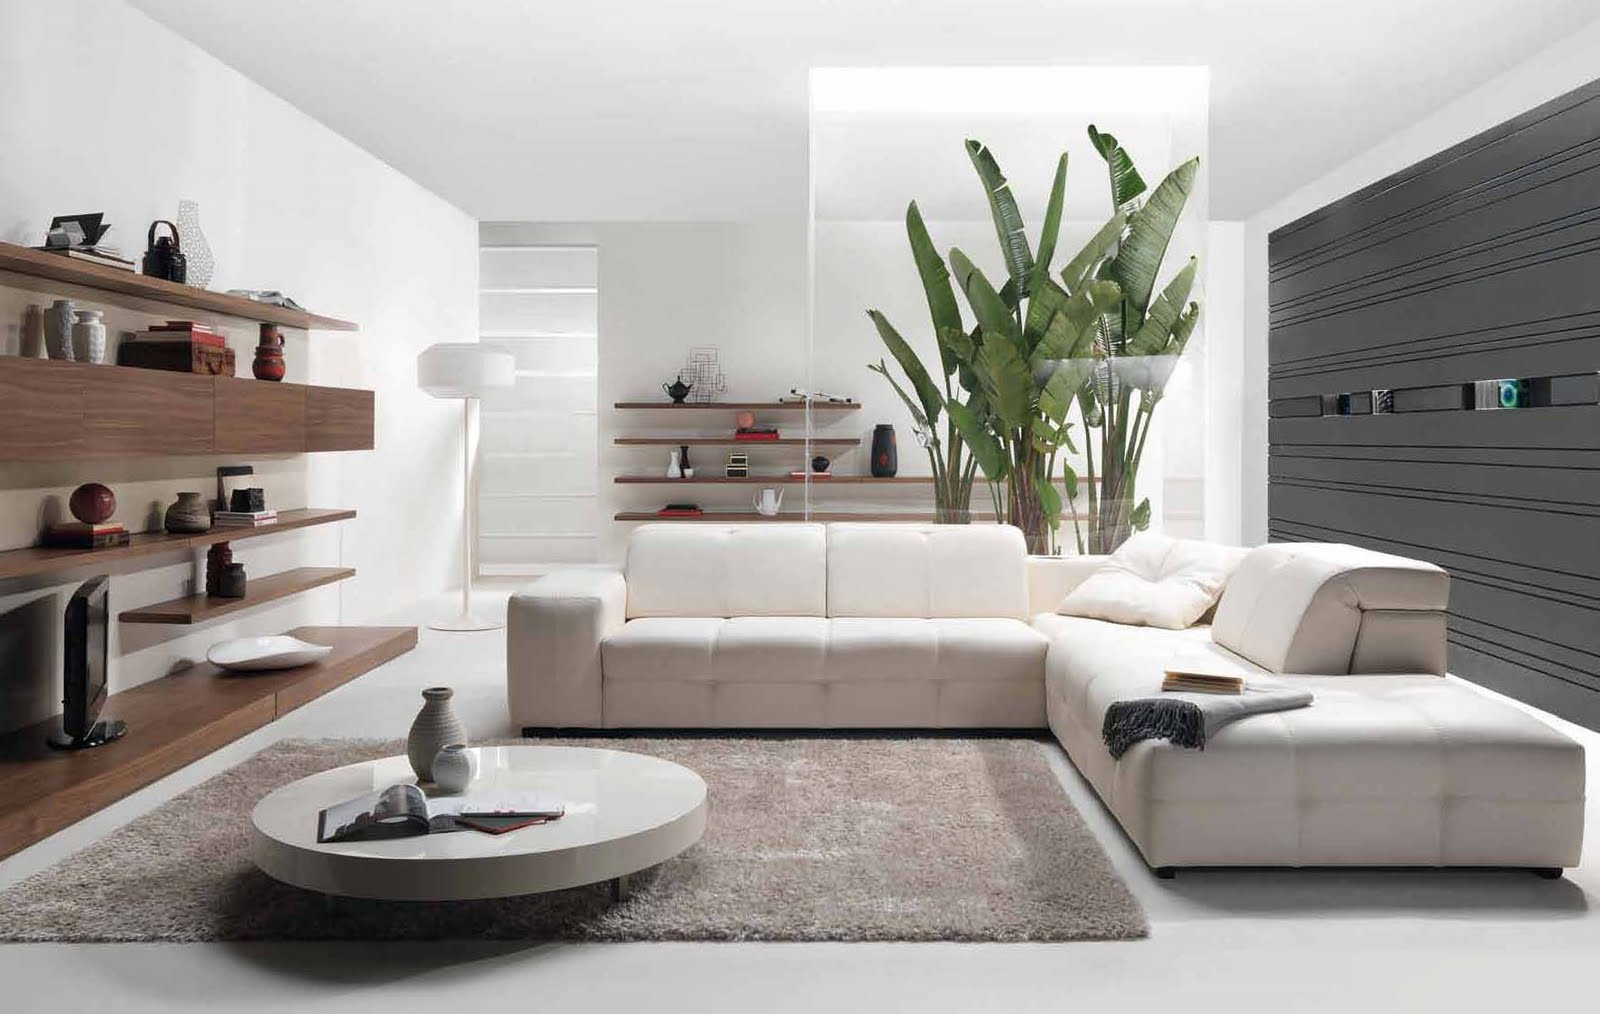 Future house design modern living room interior design - Interior design styles living room ...